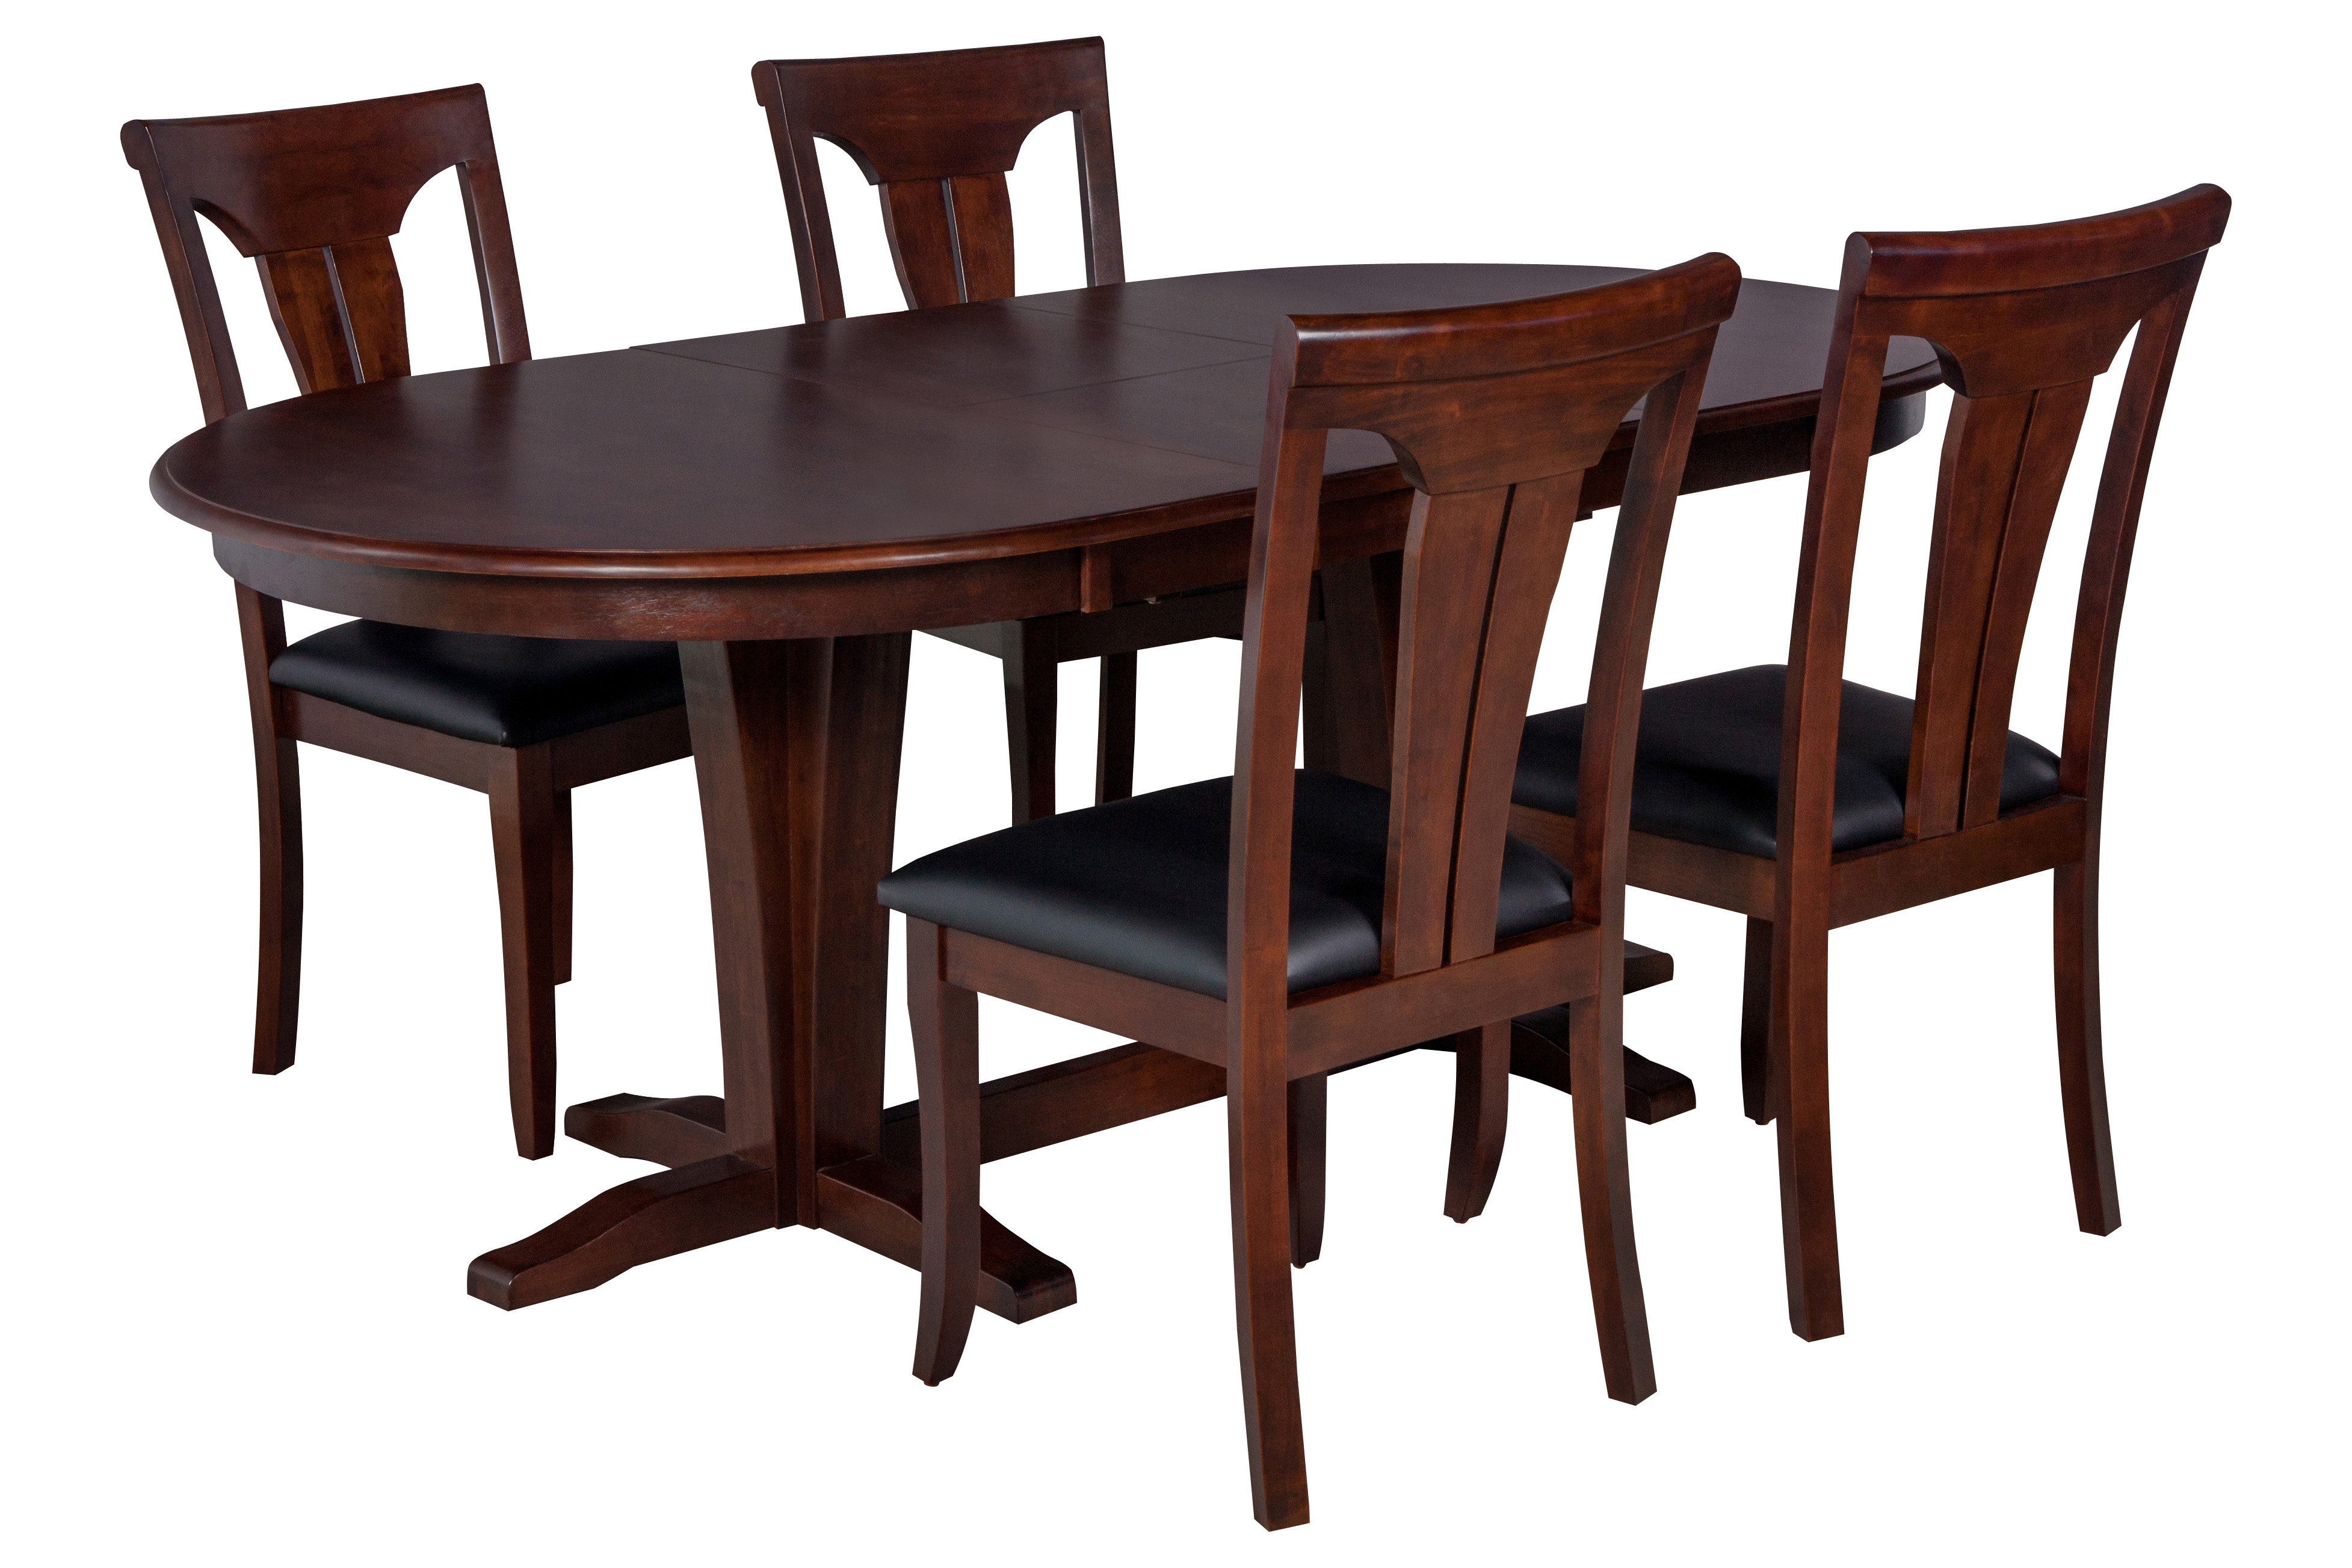 Bateson 5 Piece Curved Back Chair Dining Set With Most Current Adan 5 Piece Solid Wood Dining Sets (Set Of 5) (View 15 of 20)